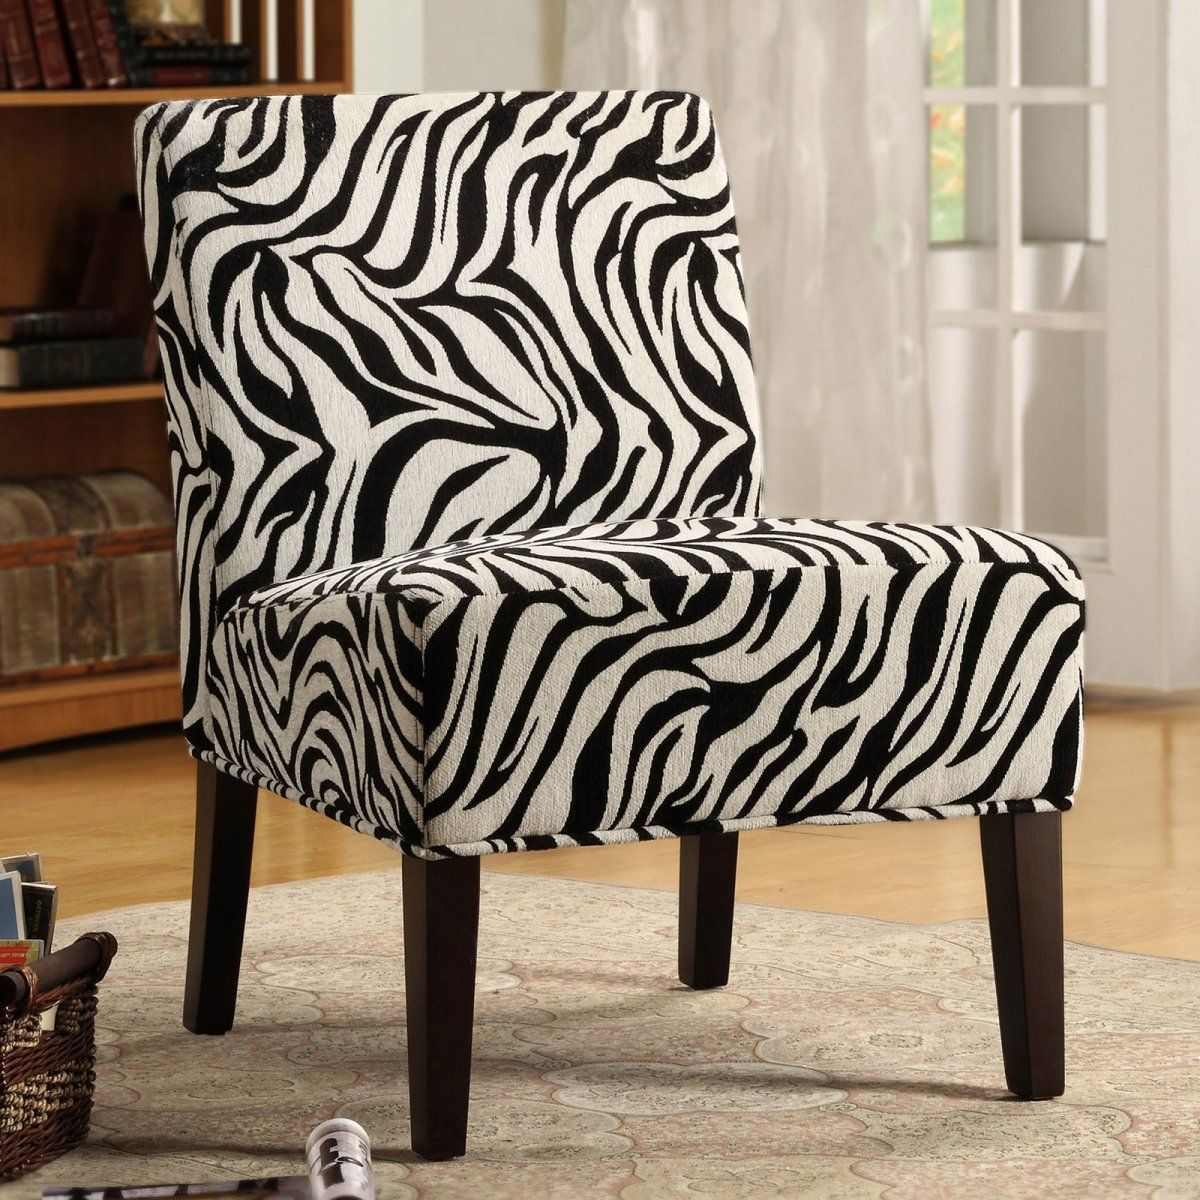 Zebra Accent Chair Bree Fabric Accent Chair Zebra 179 99 2013 Hot New